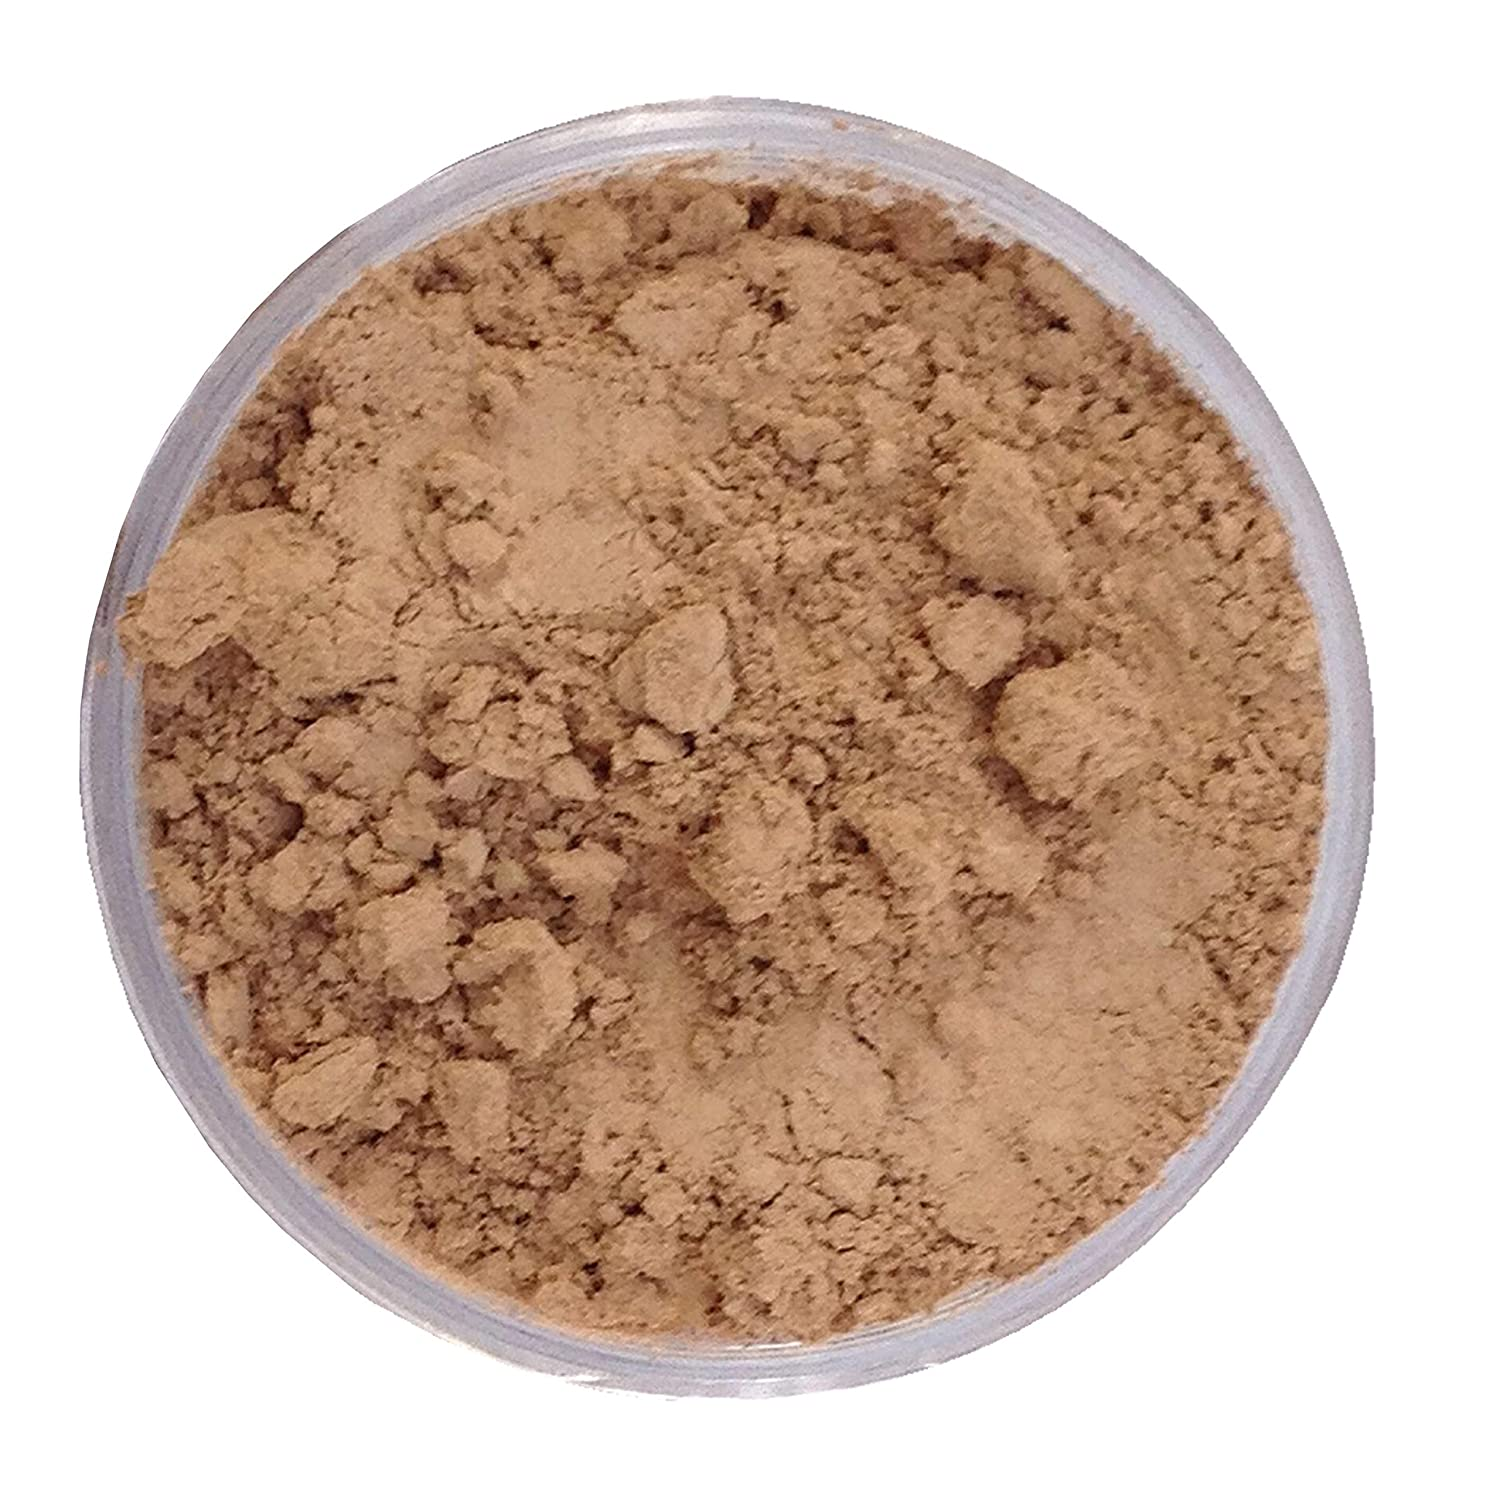 WARM MEDIUM OLIVE Mineral foundation Full Cover Makeup 5g Powder Jar Natural Finish Soft Glow Cover Acne Rosacea Redness BUY 2 GET ONE FREE Pure Magic Minerals